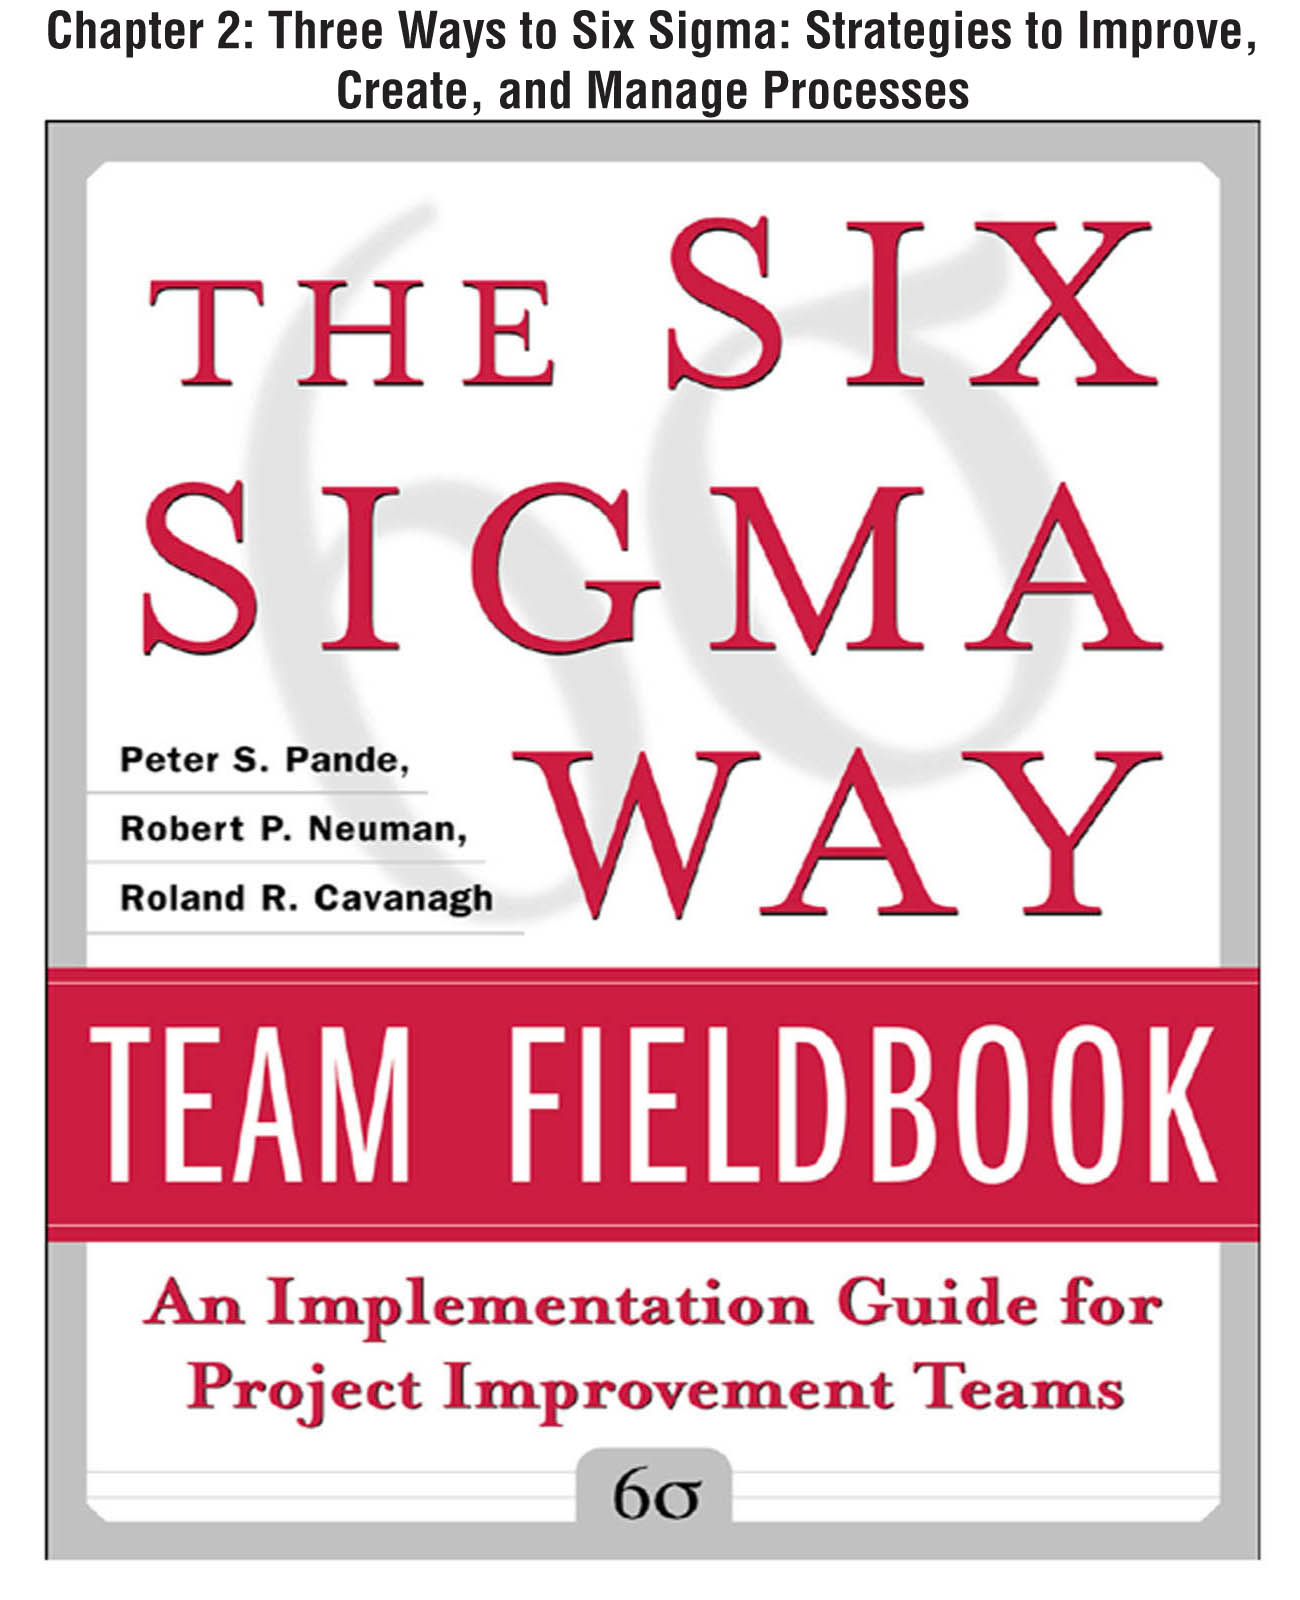 The Six Sigma Way Team Fieldbook, Chapter 2 - Three Ways to Six Sigma Strategies to Improve, Create, and Manage Processes